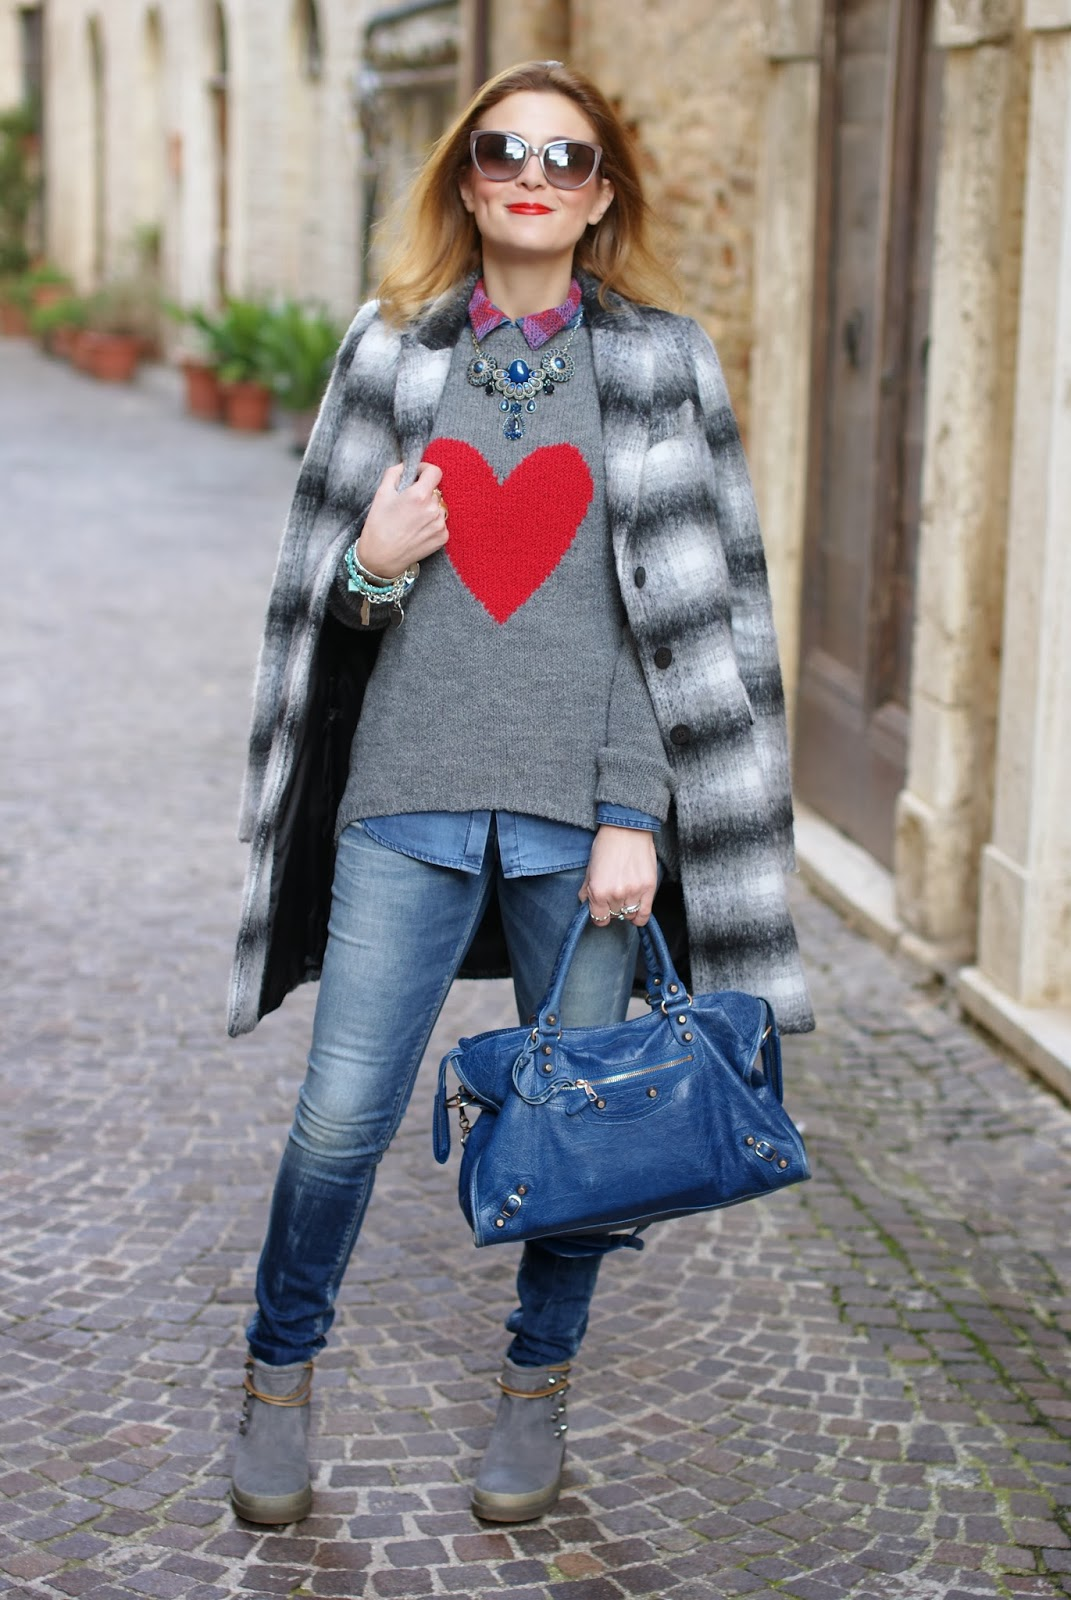 Zara checked coat, heart sweater, Ruco Line Ariel boots, Fashion and Cookies, fashion blogger